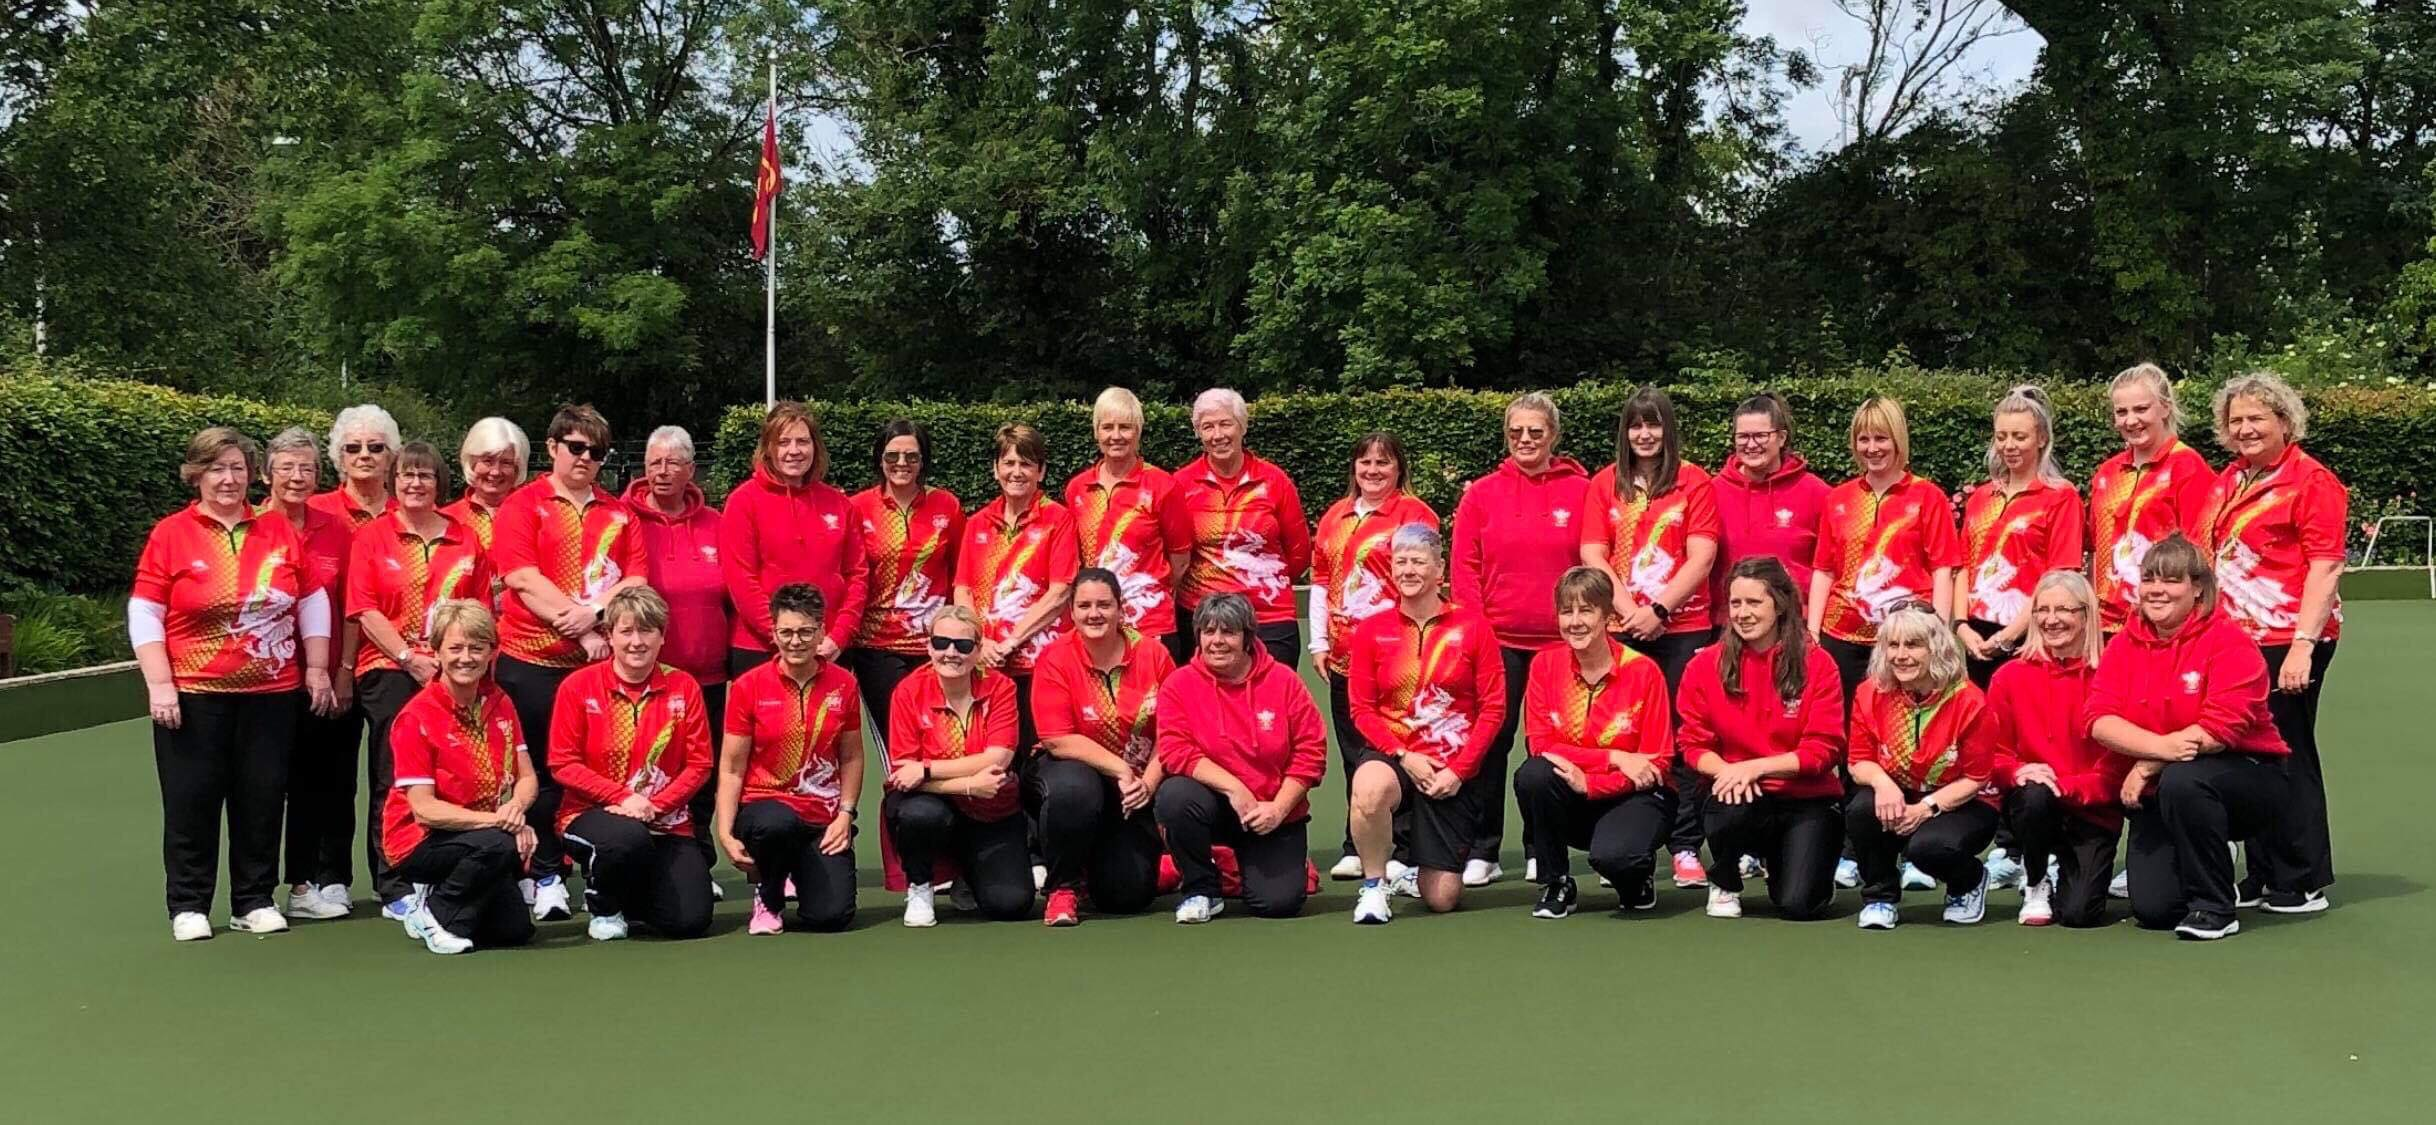 2019WelshSeniorInternationalTeam and British Isles Representatives